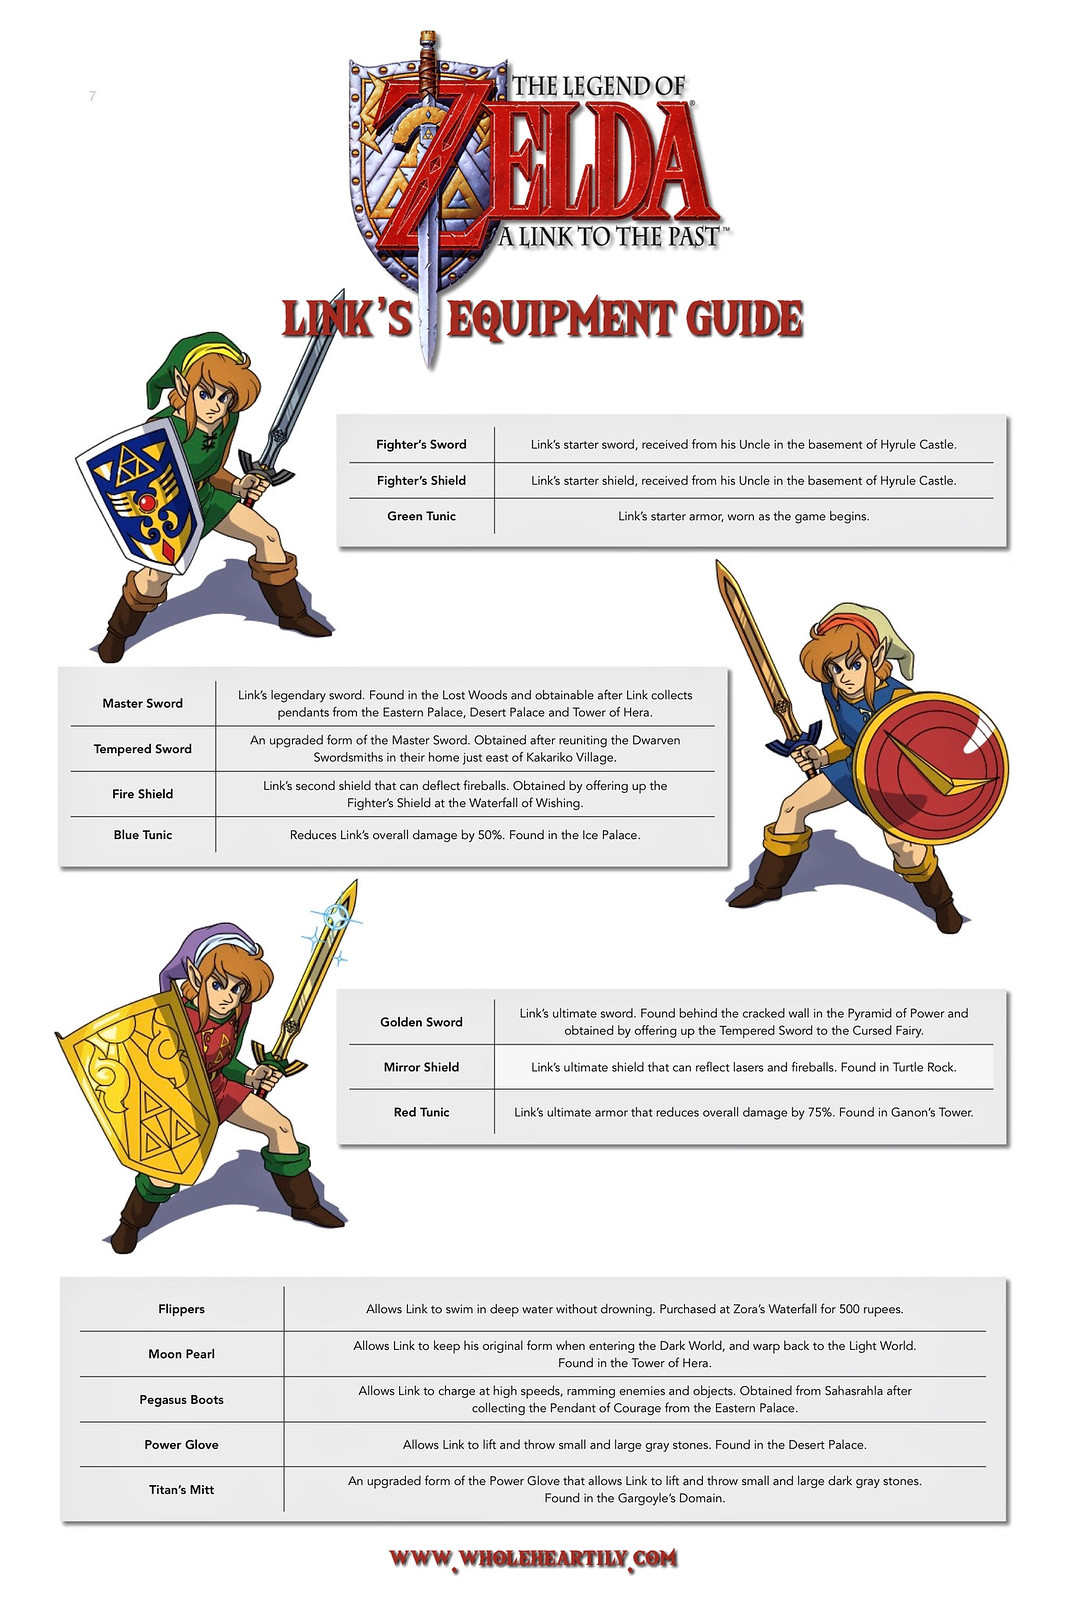 Link's Equipment Guide